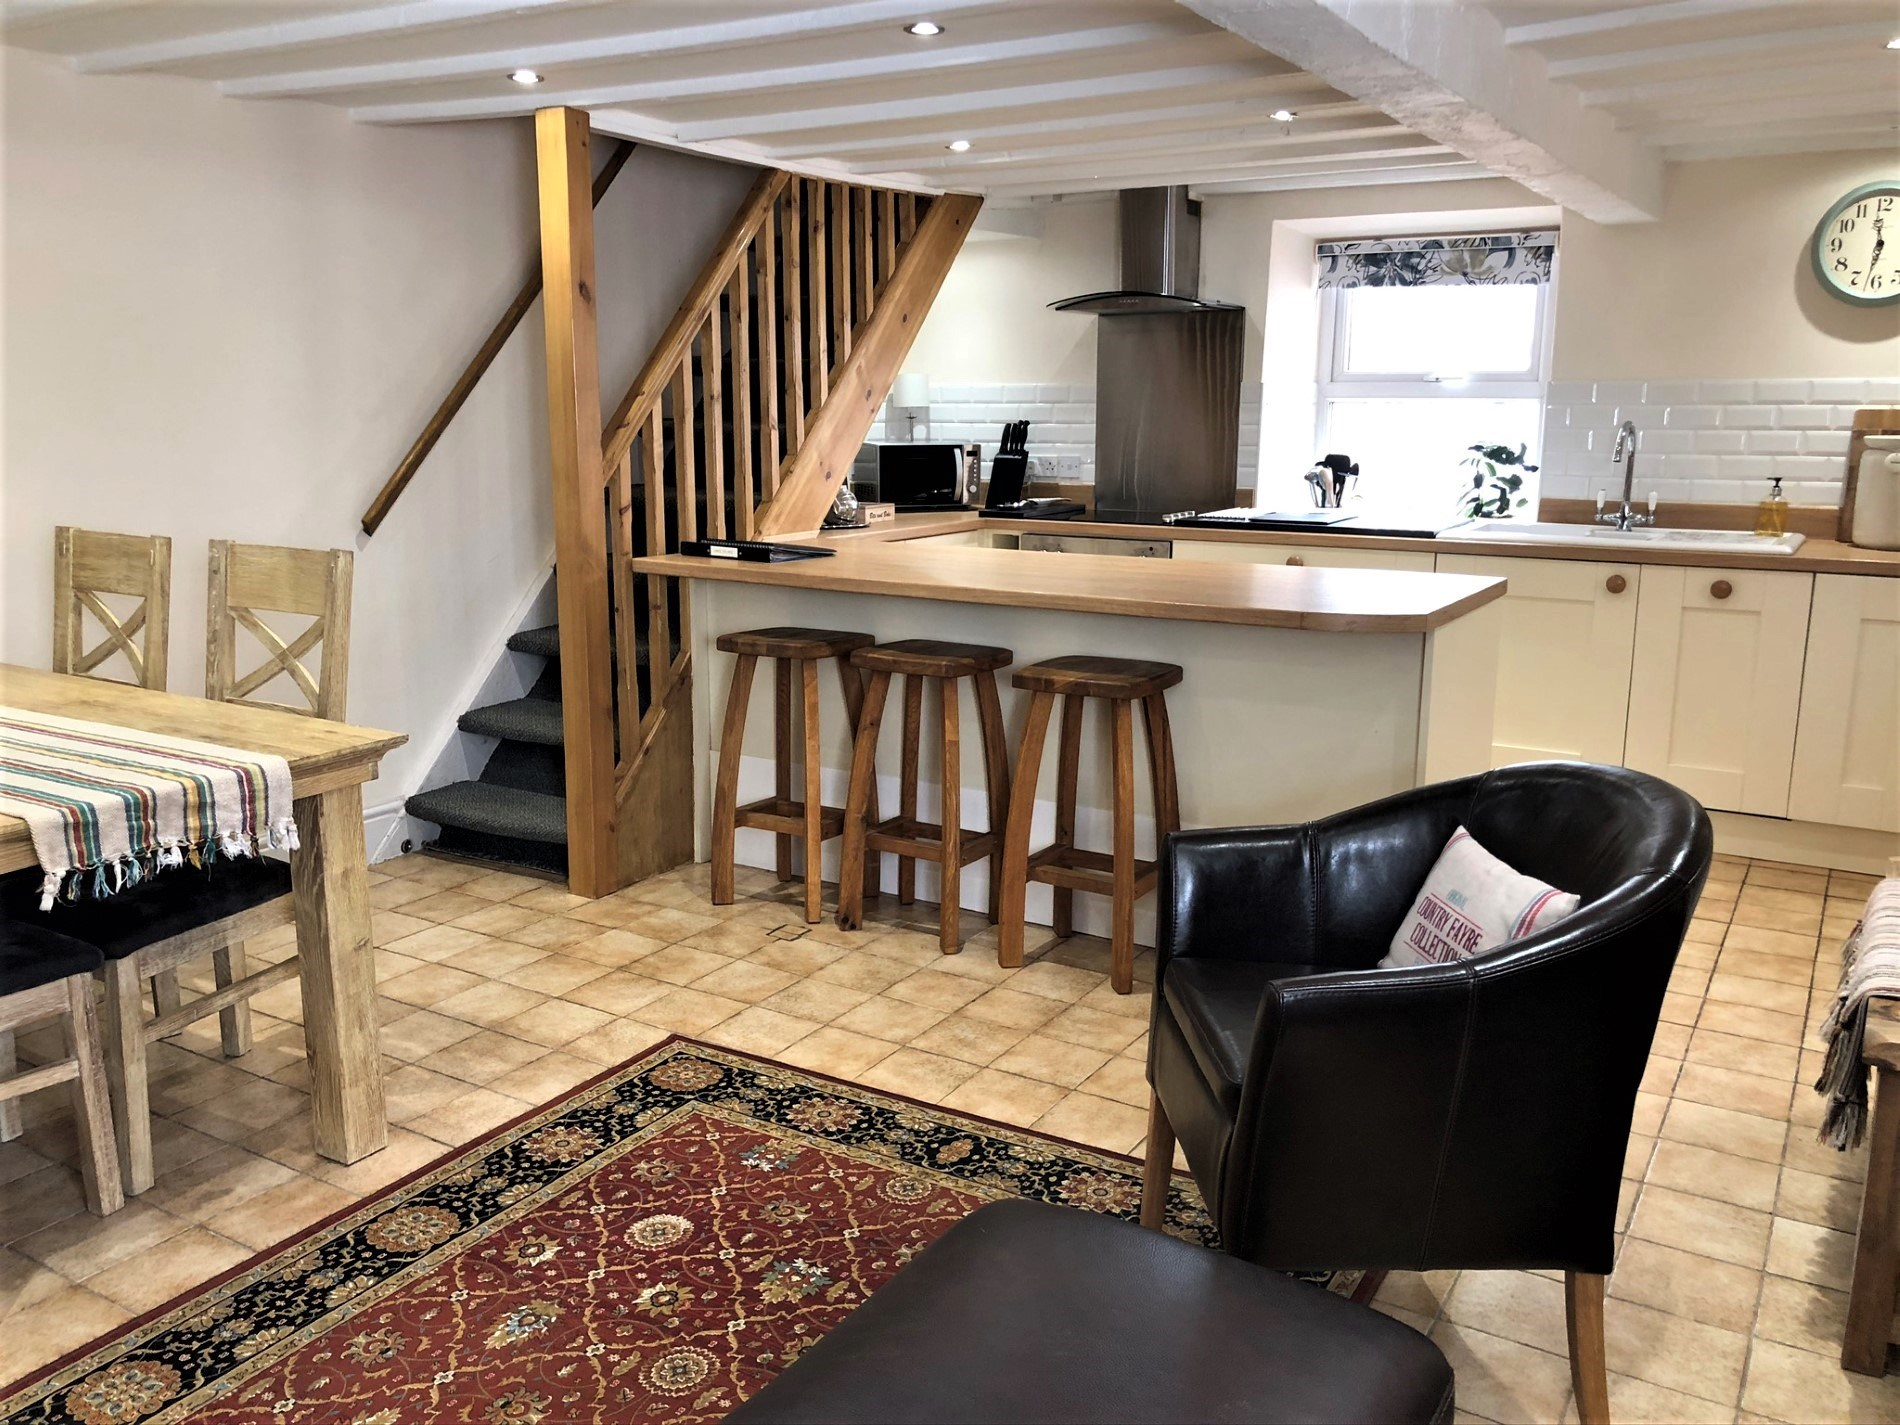 2 Bedroom House in North Wales, Snowdonia and North Wales